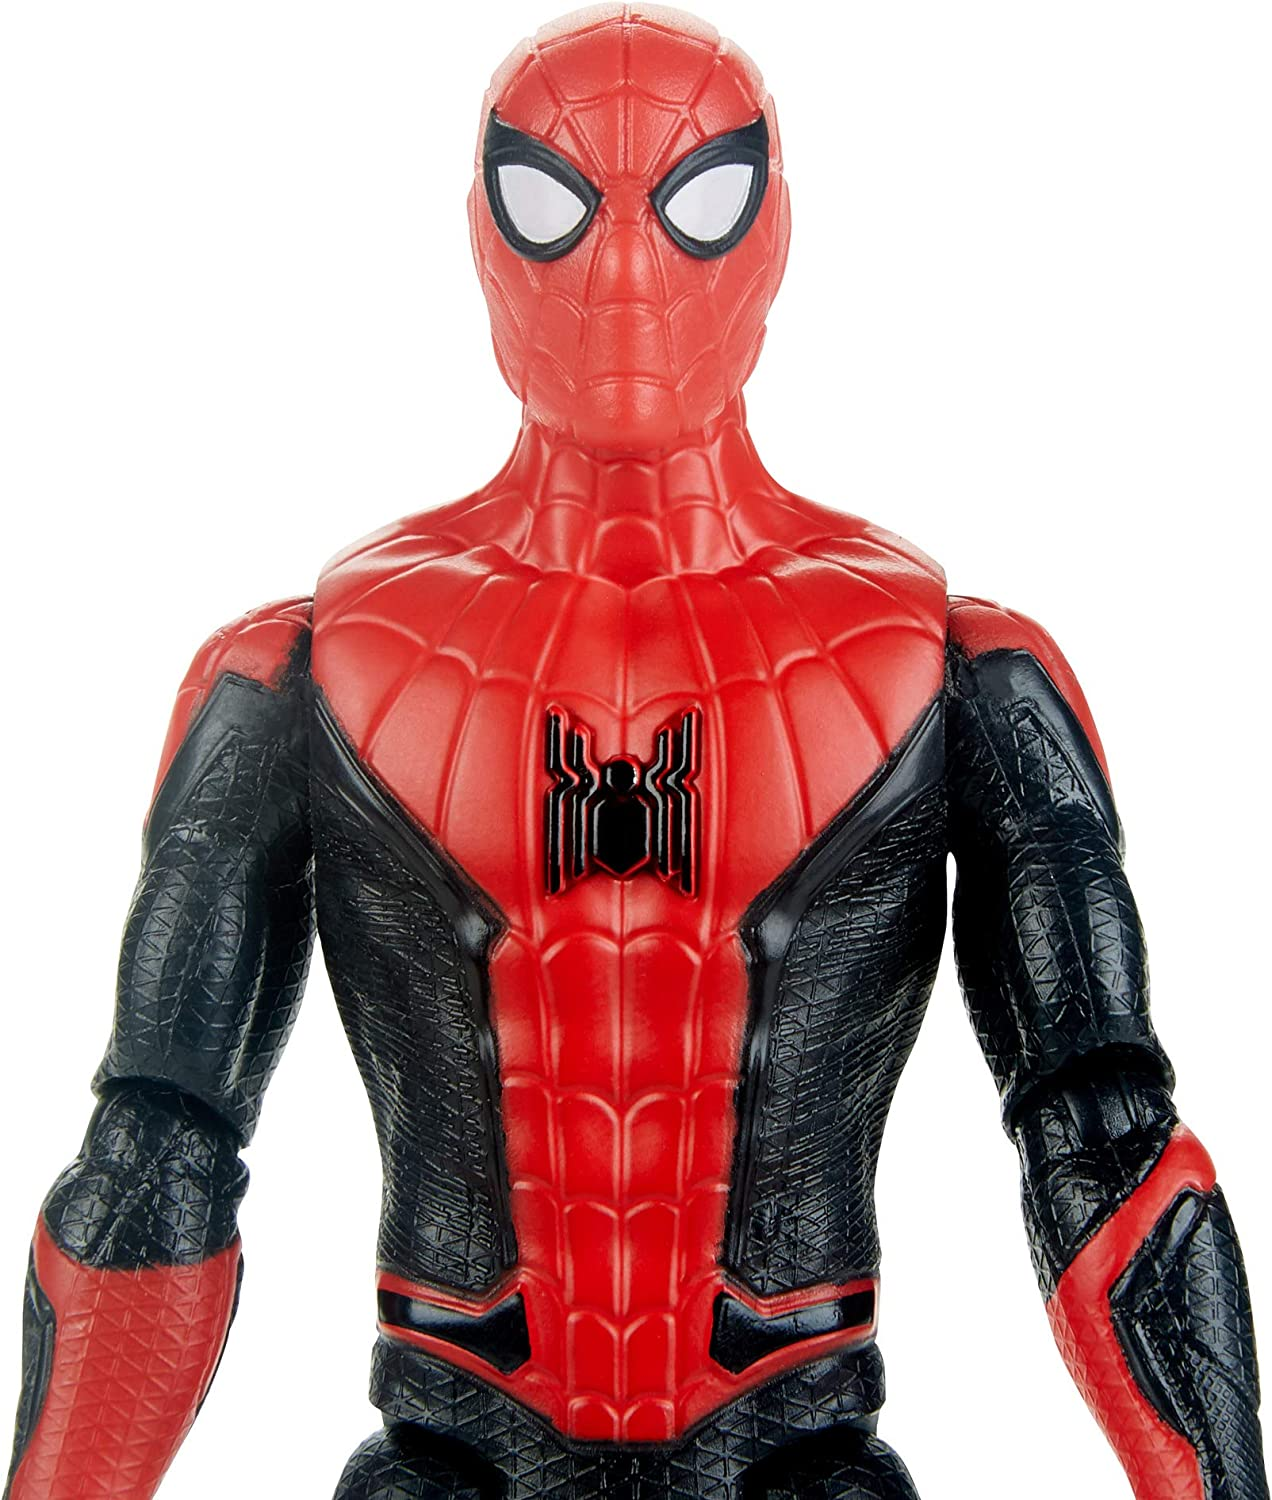 Spider Man Far From Home Web Shield 6 Scale Hero Action Figure Toy Ages 4 Up Toys Games